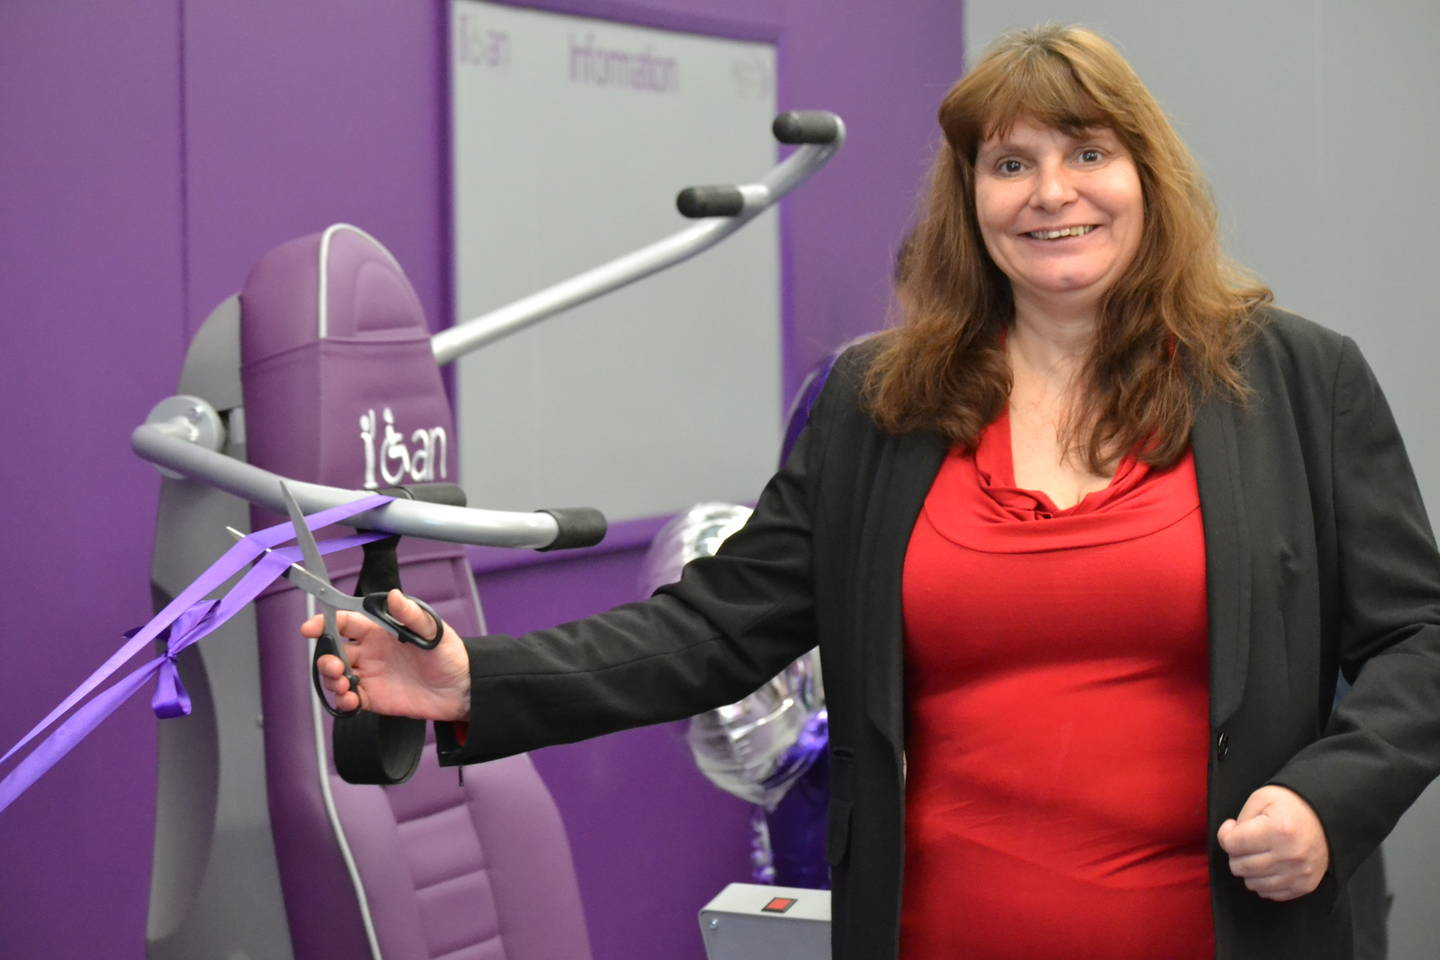 Sara Payne ribbon cutting at the Valley Leisure Launch New & Innovative Therapy Centre